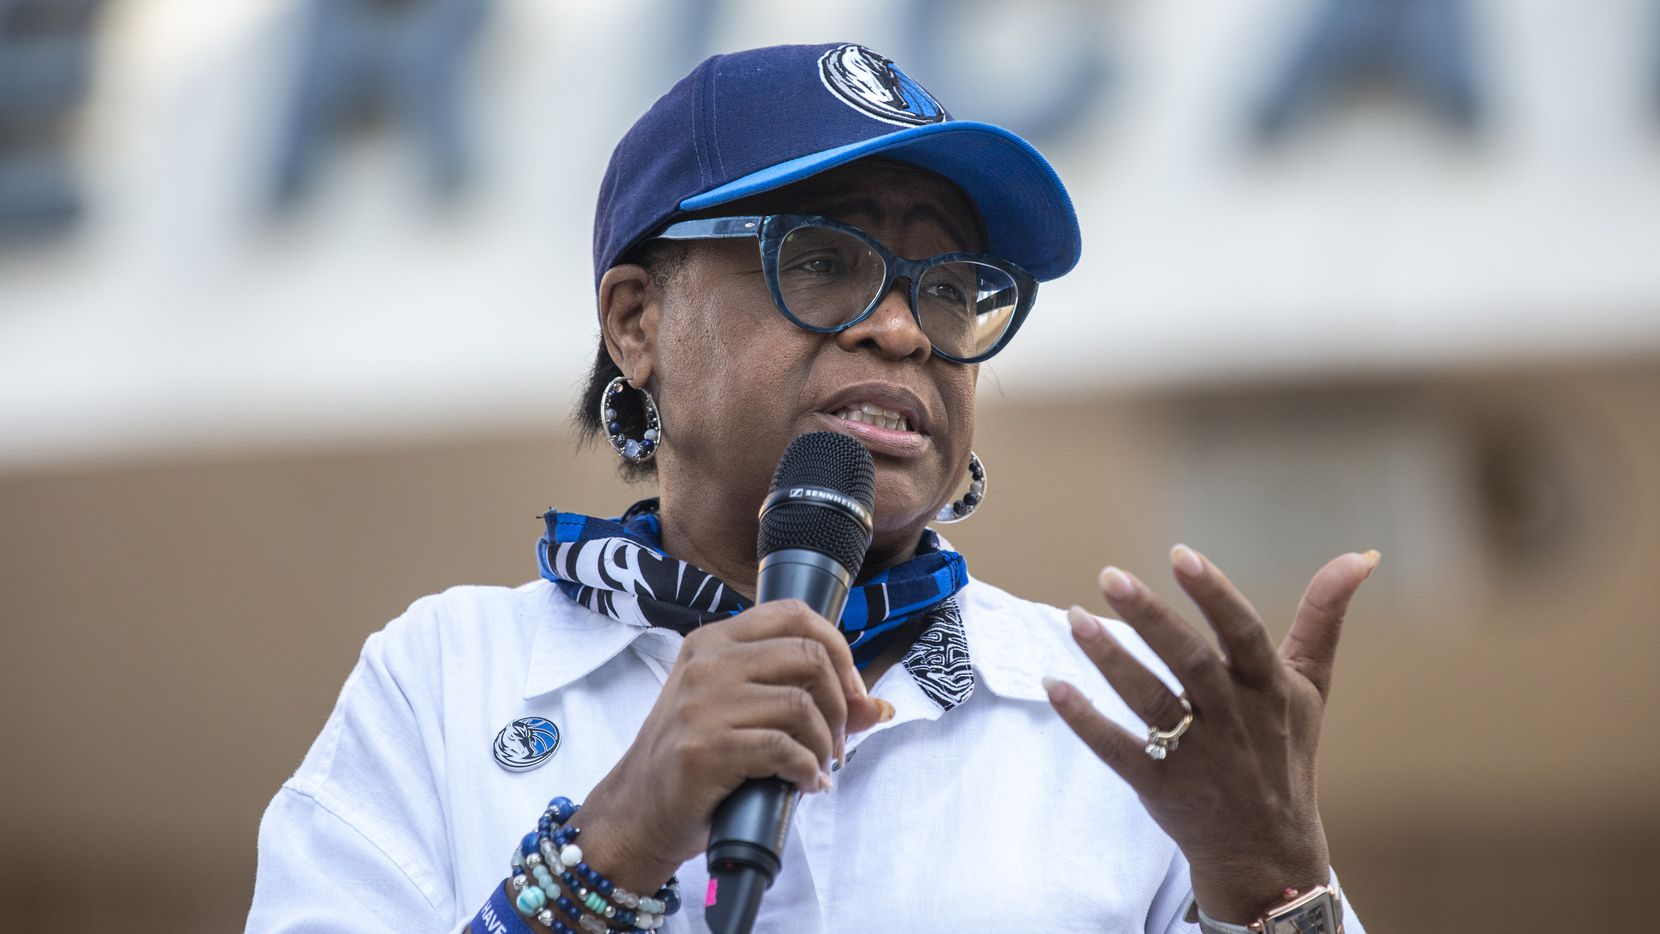 In this June 2020 file photo, Dallas Mavericks CEO Cynt Marshall welcomes attendees during a Courageous Conversations meet-up to discuss systemic racism at Victory Plaza outside the American Airlines Center. The NBA organization recently said it's partnering with Paul Quinn College for the development of a new bachelor's program focused on leadership and sports management.